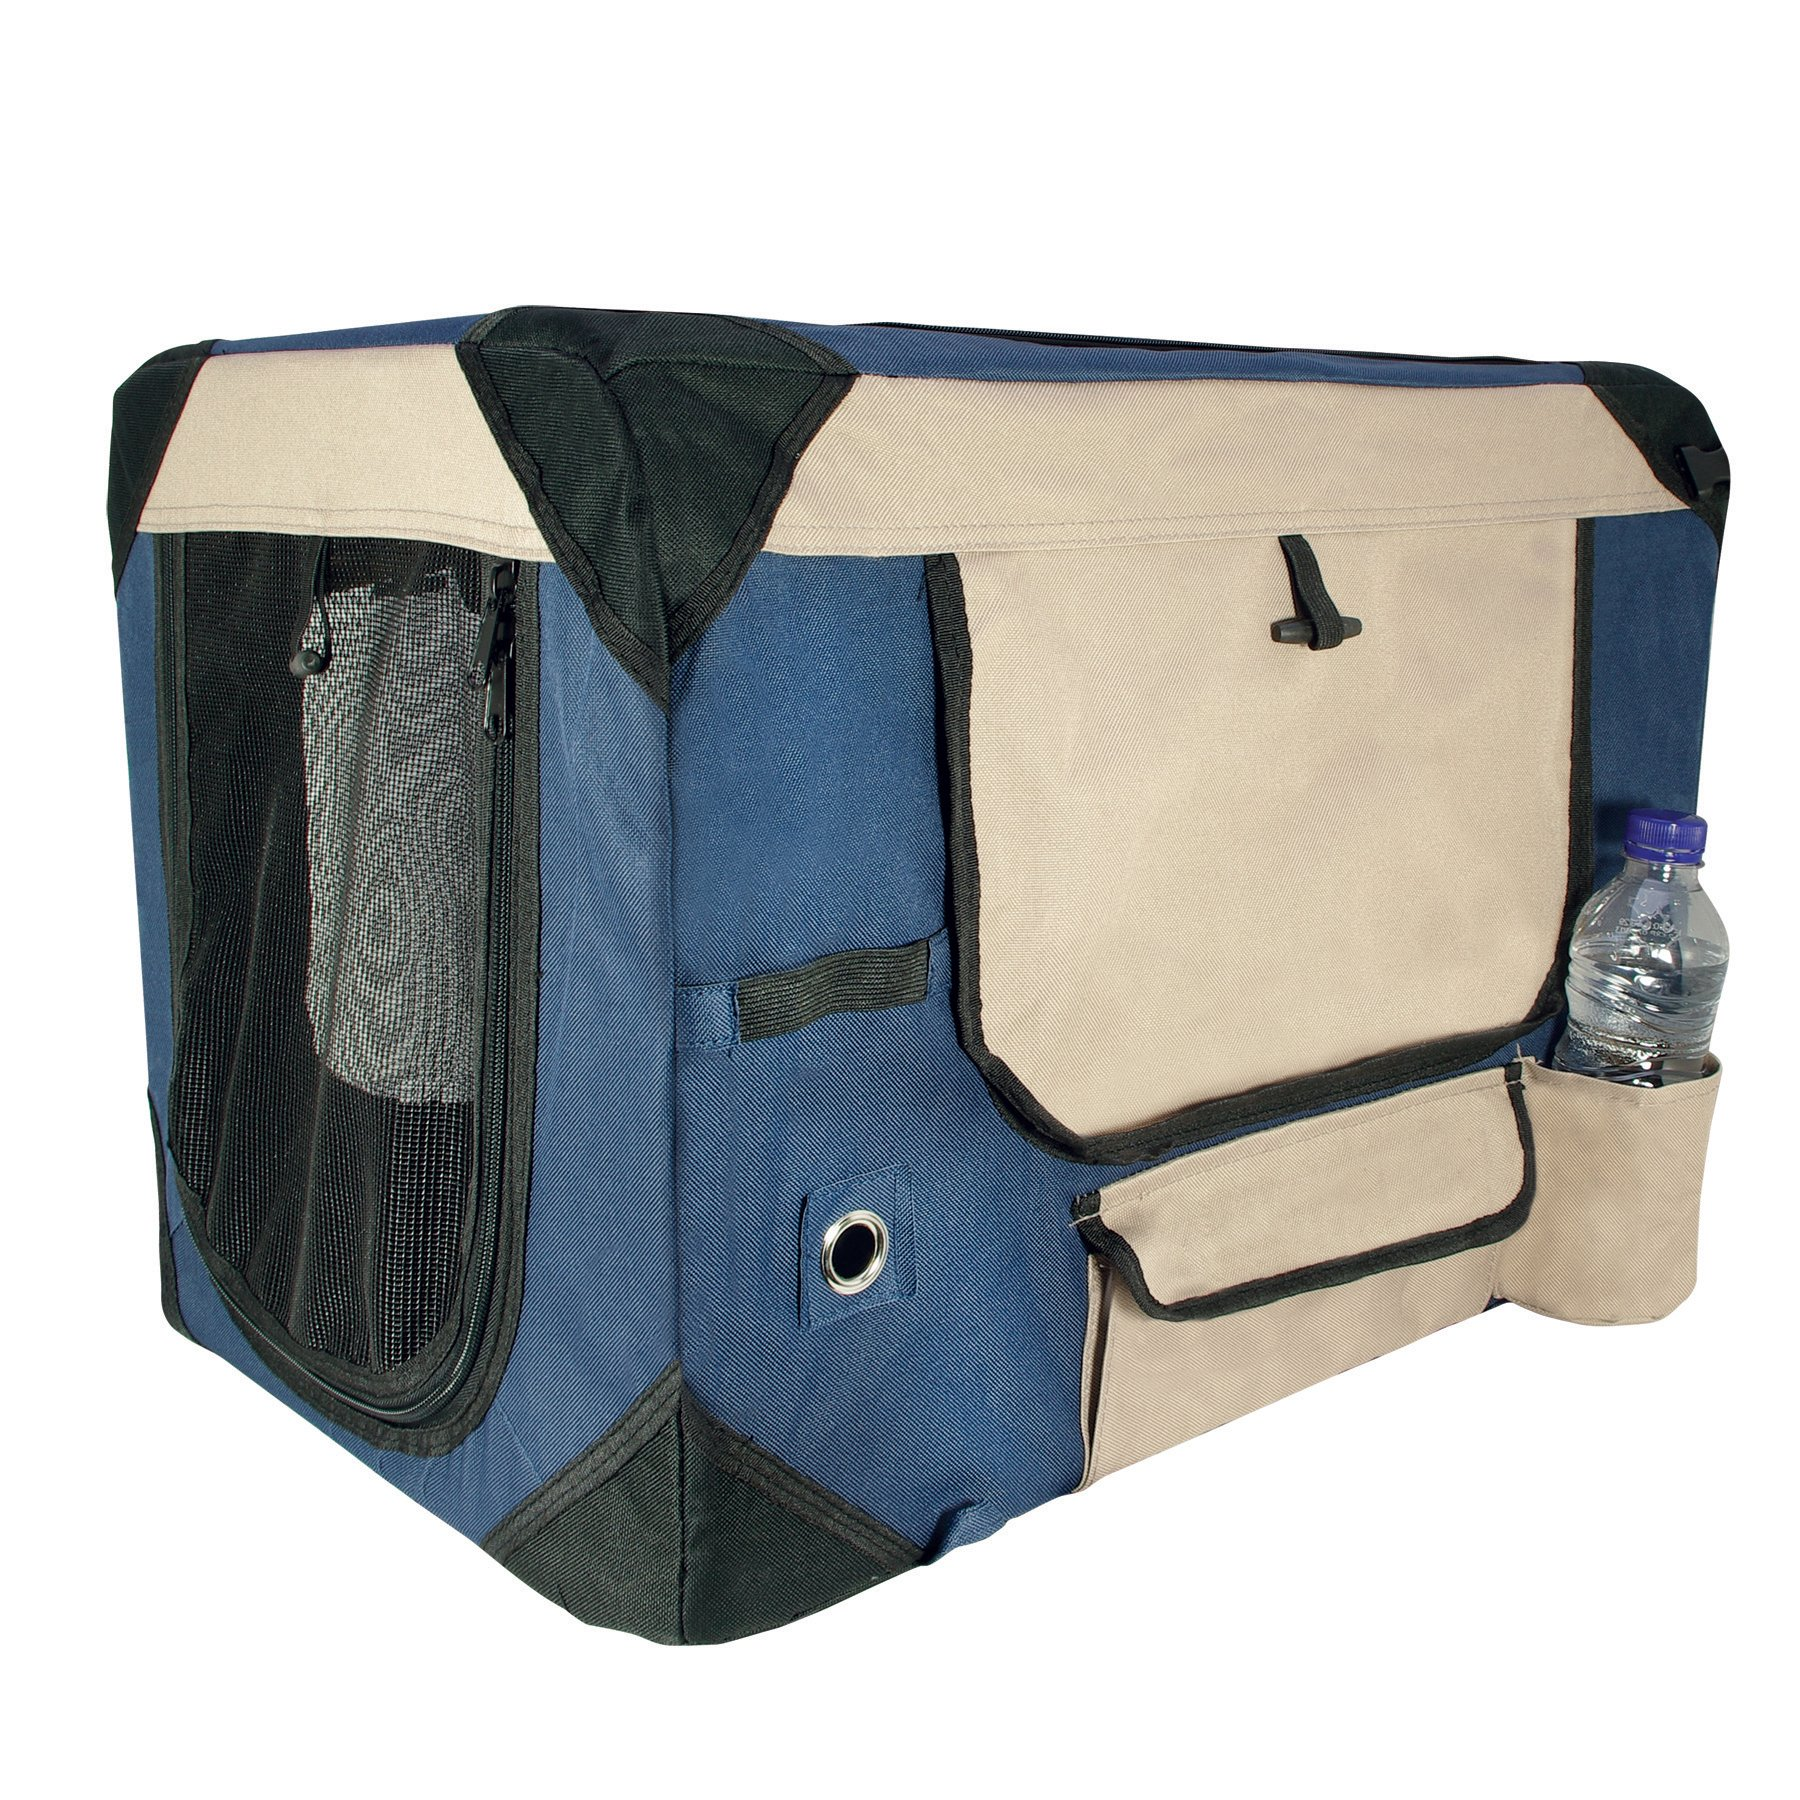 Dogit Deluxe Soft Crate with Bag for Pets, Small, Blue